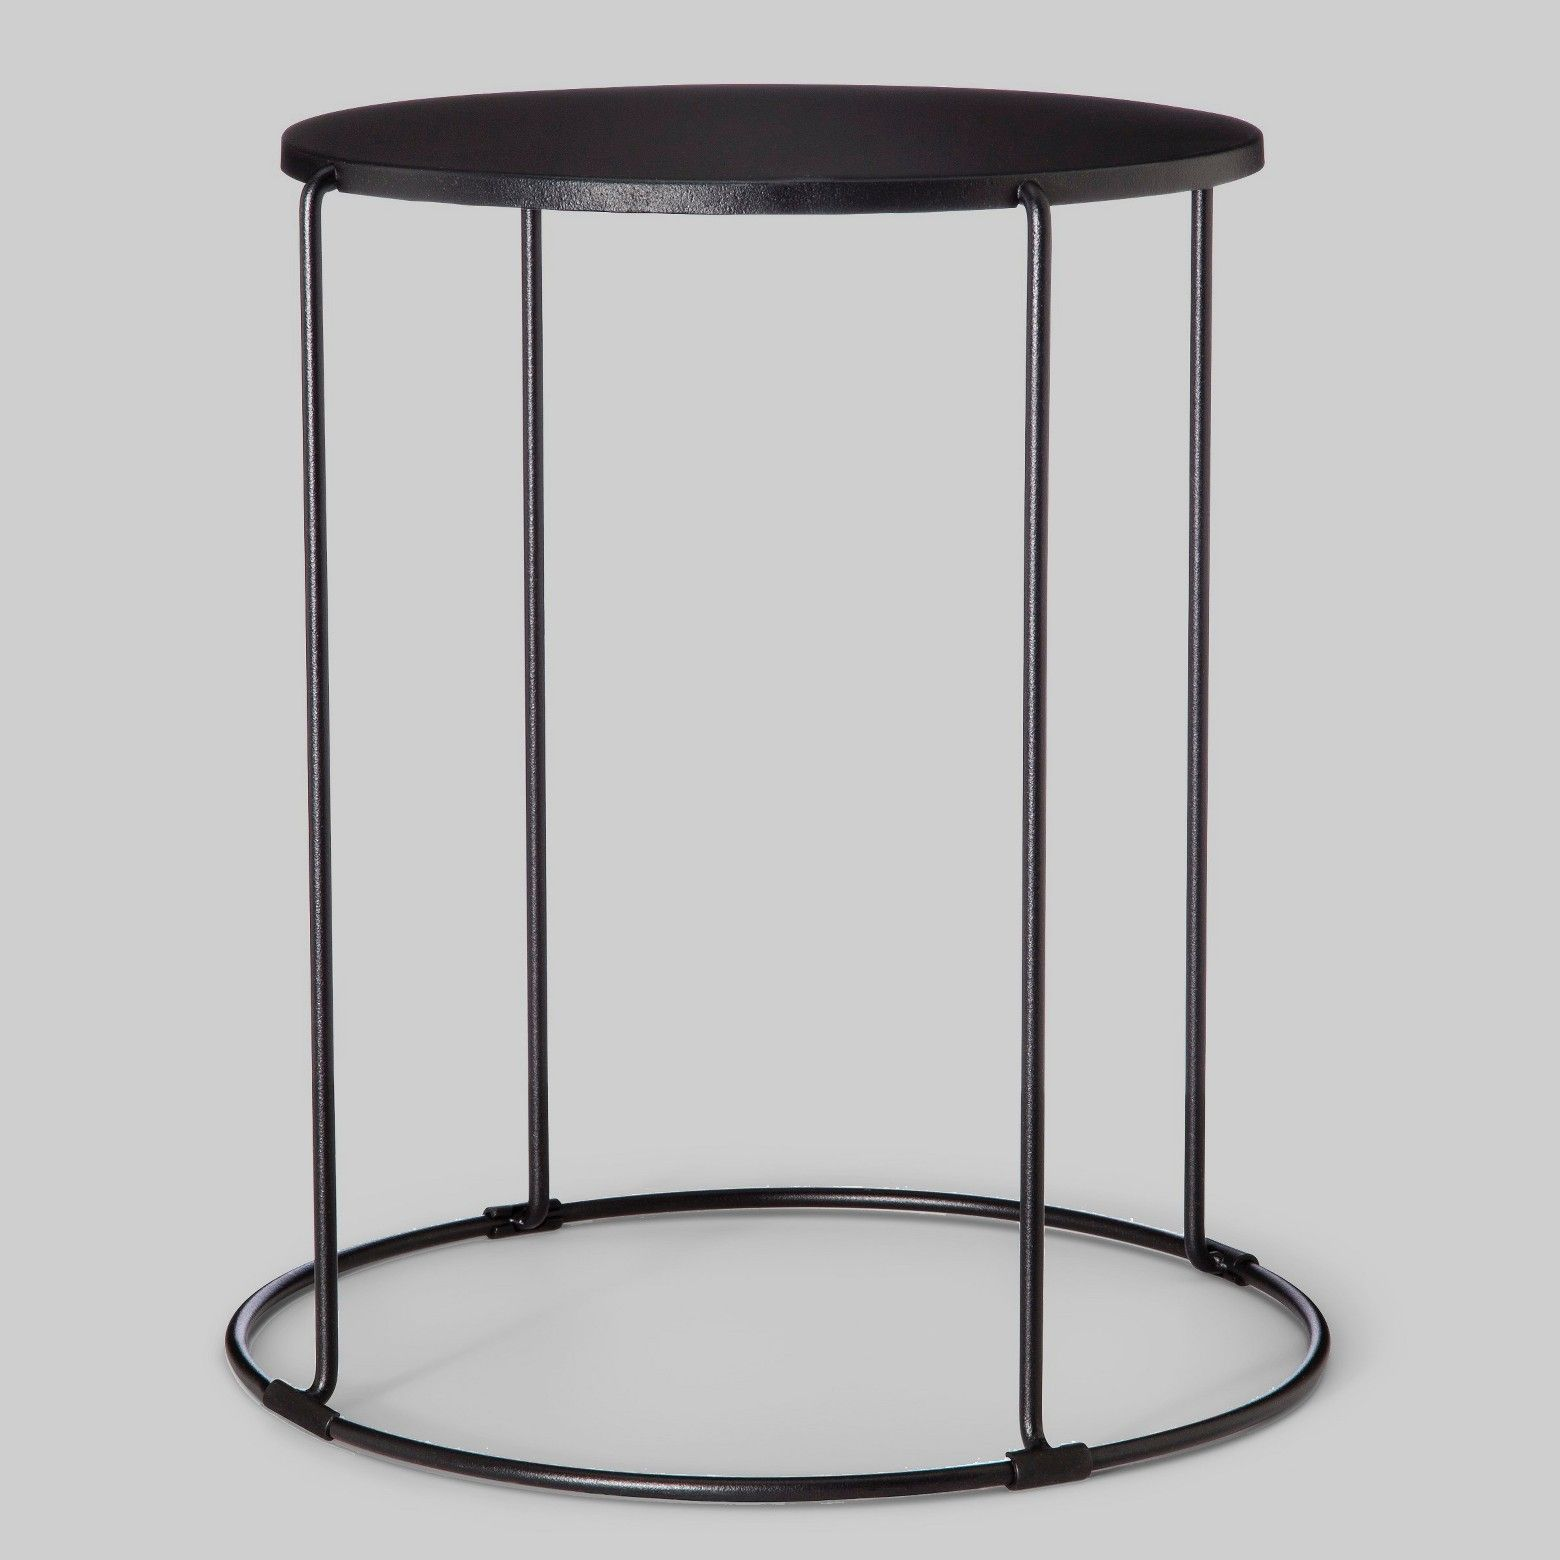 Patio Accent Table Round Black Project 62